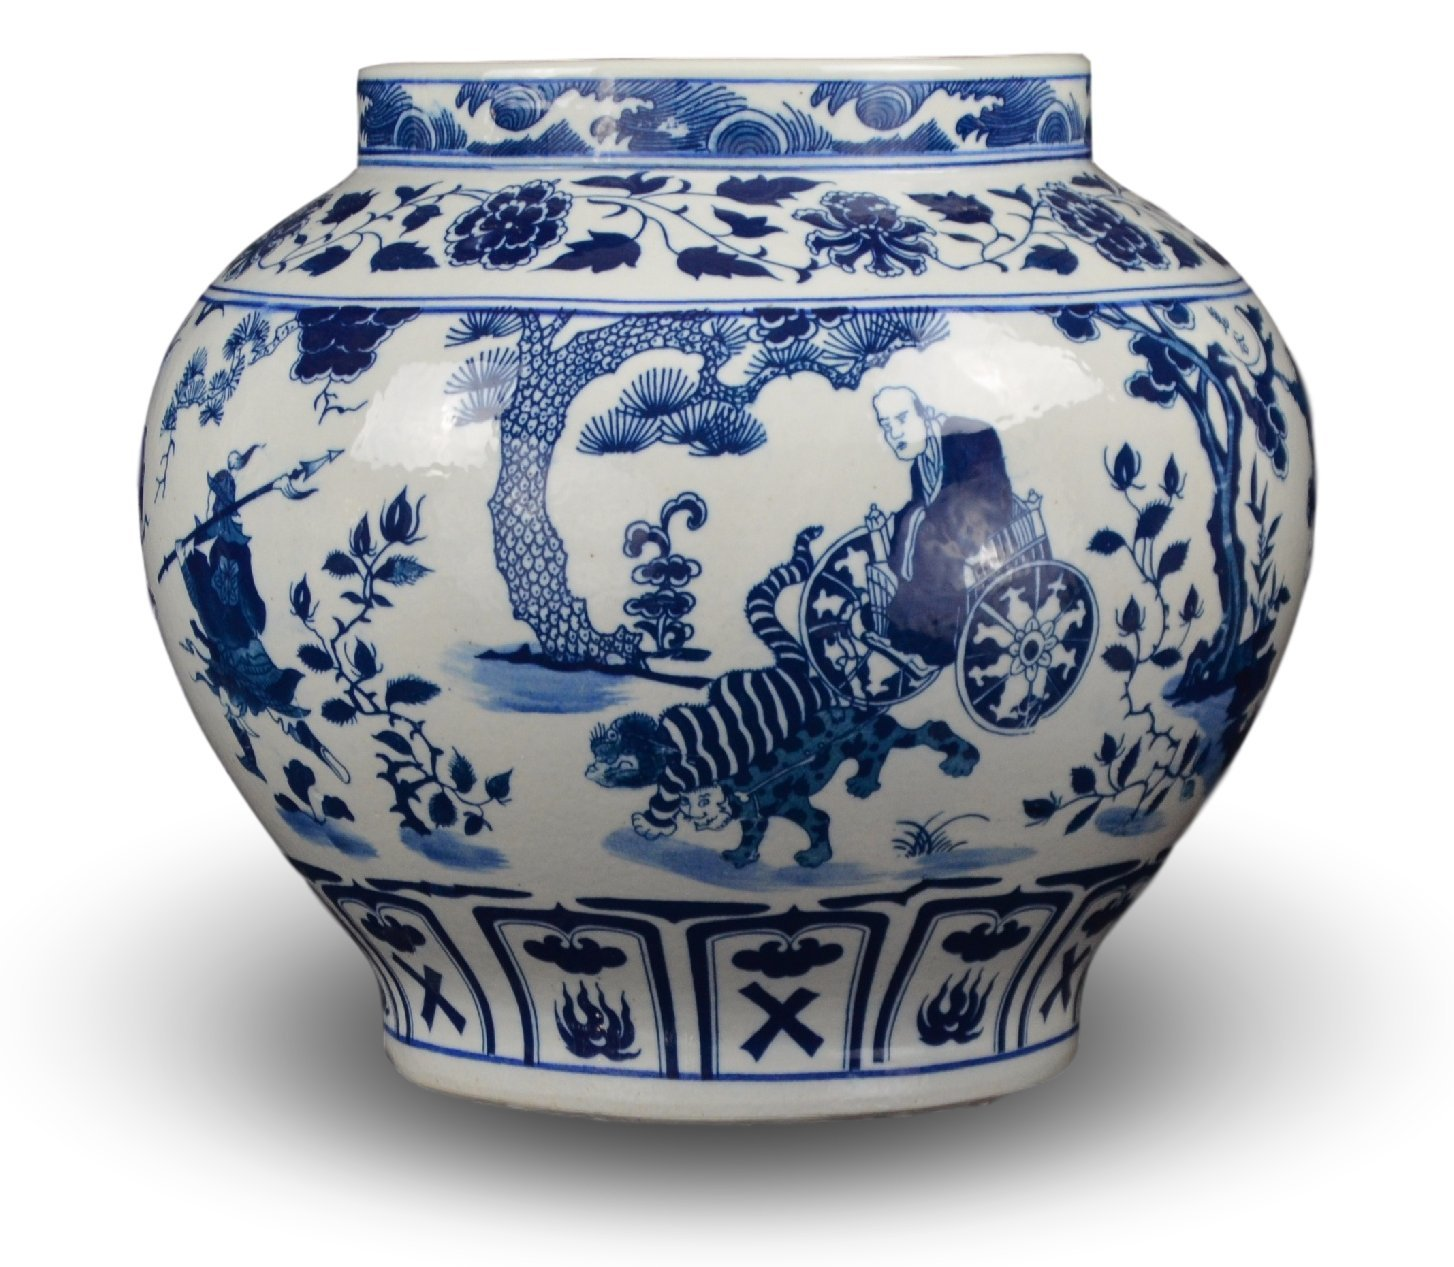 Classic Blue and White Yuan Porcelain Vase, Gui Guzi Descends the Mountain, China Yuan Style, 11'', Free Wood Base